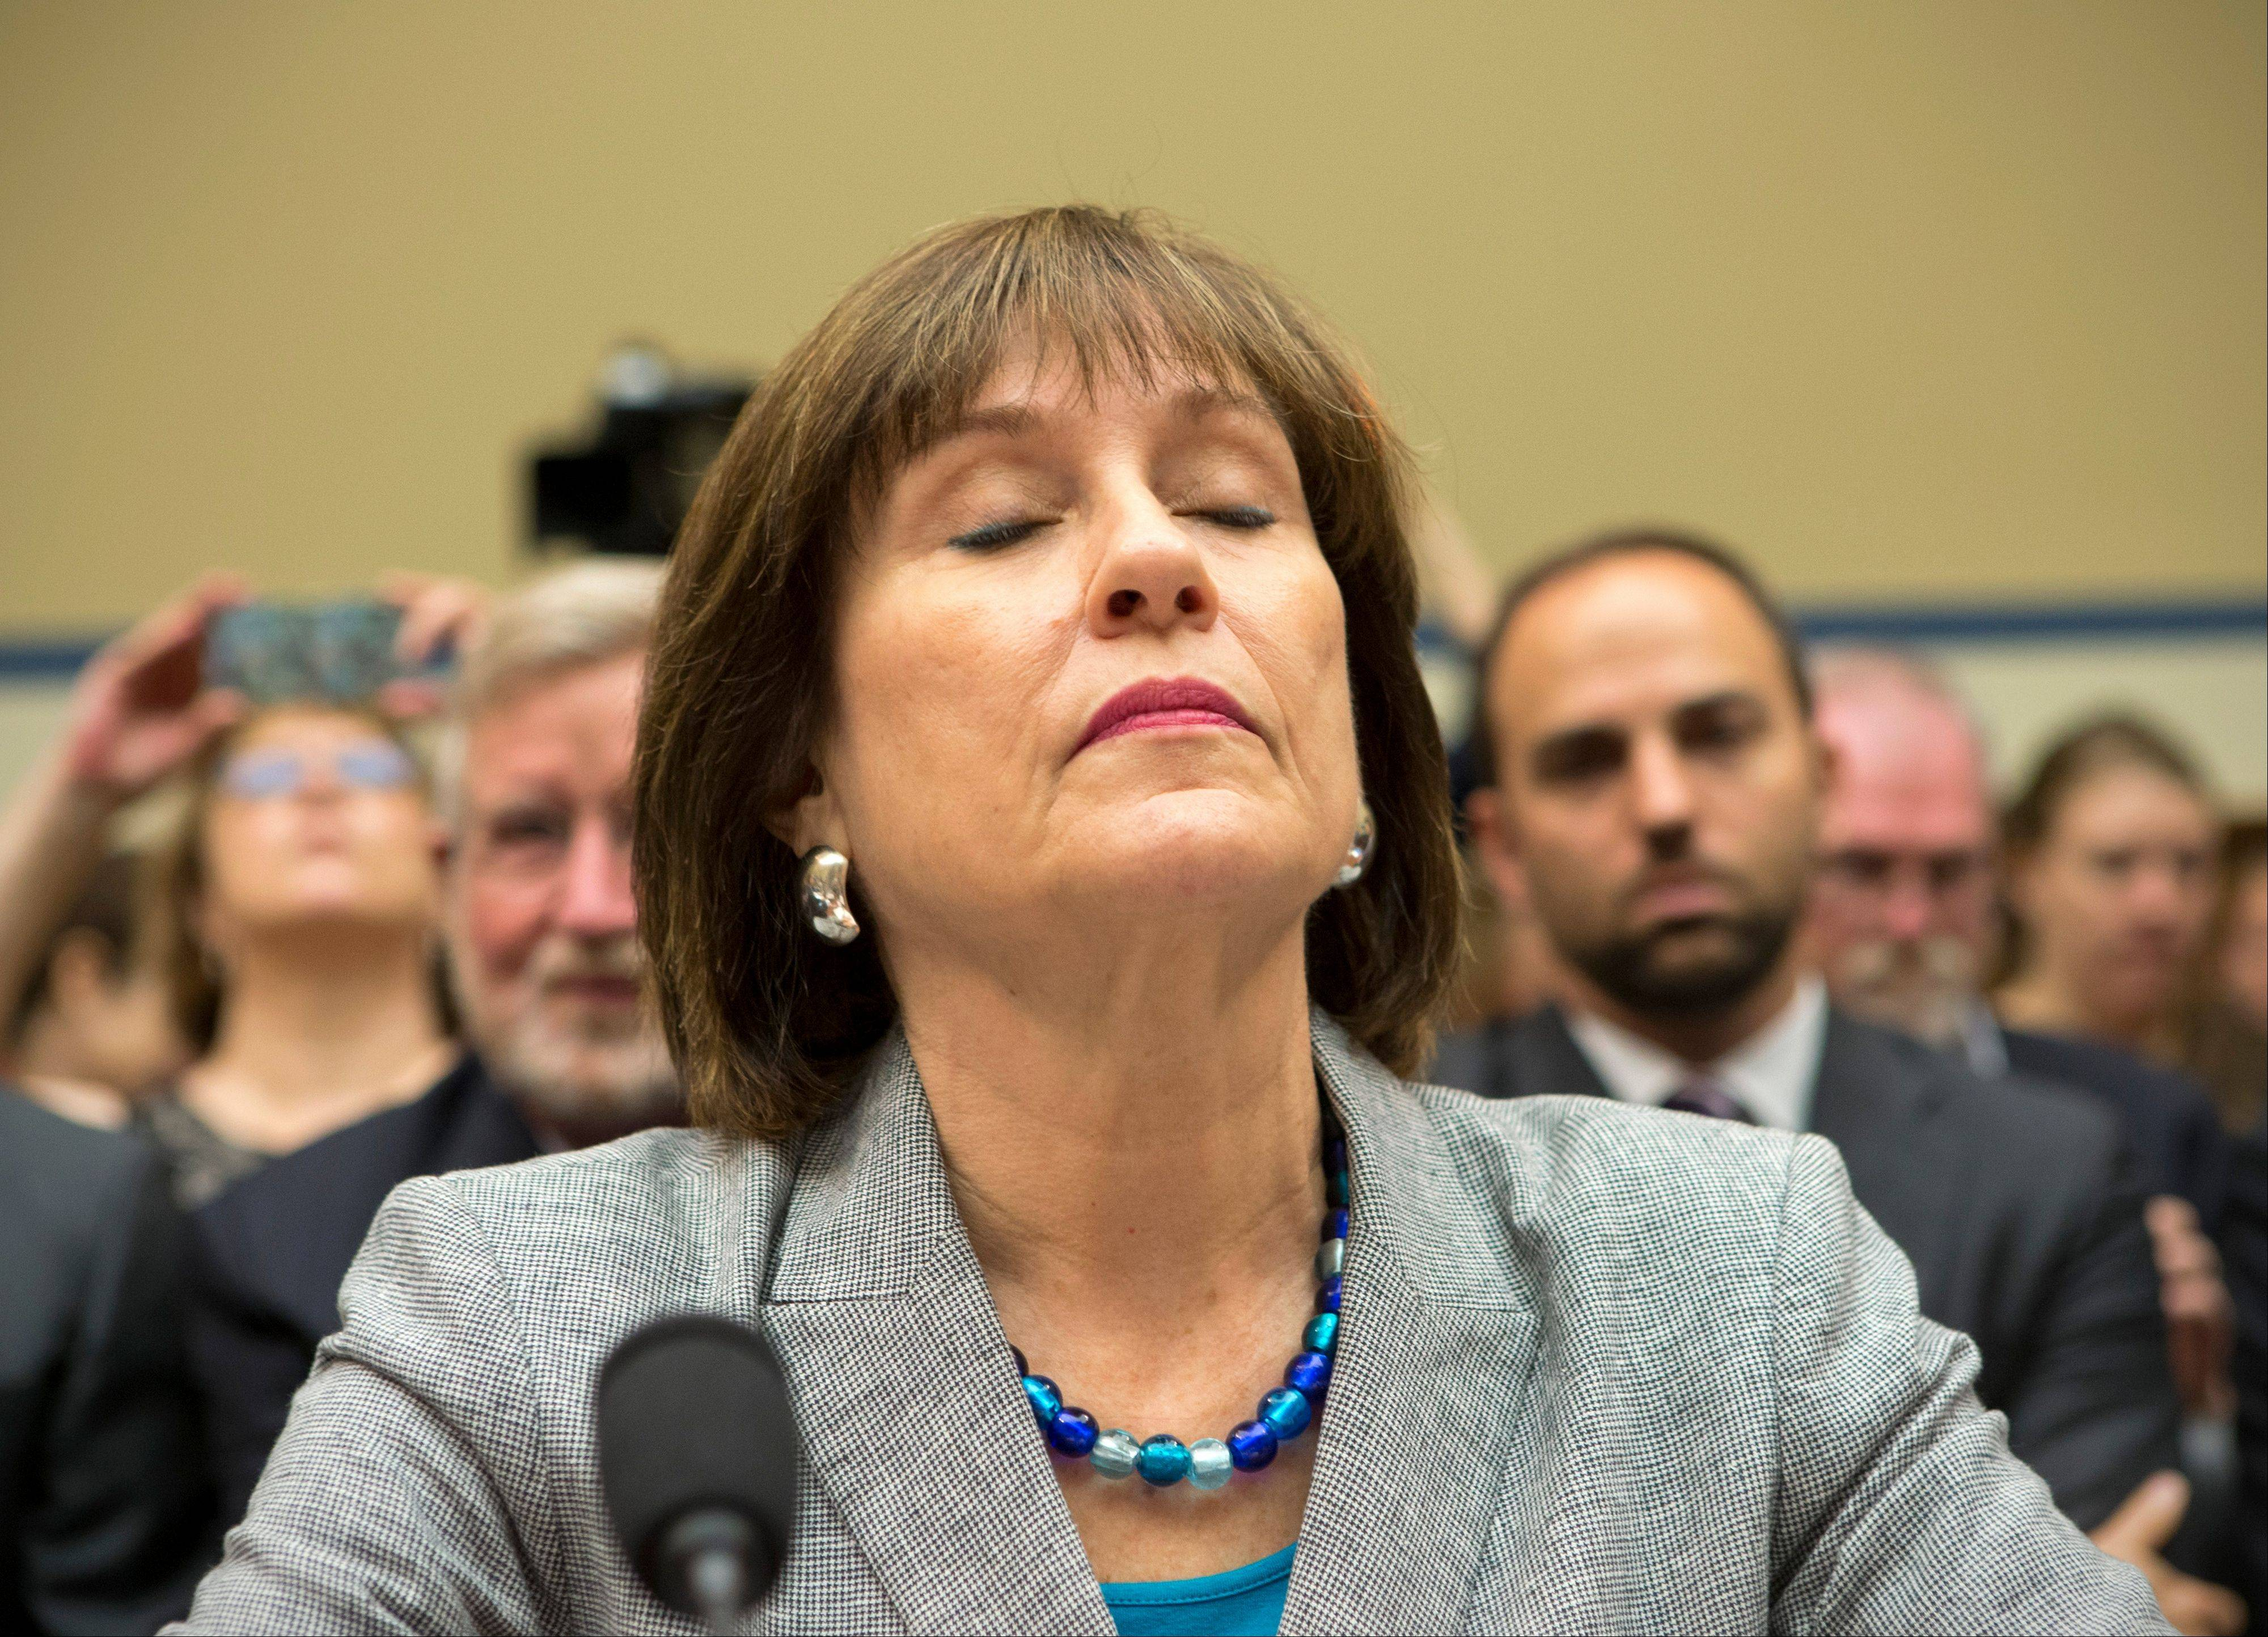 Lois Lerner, head of the IRS unit that decides whether to grant tax-exempt status to groups, listens on Capitol Hill in Washington, Wednesday, May 22, 2013, during a House Oversight and Government Reform Committee hearing to investigate the extra scrutiny the IRS gave to Tea Party and other conservative groups that applied for tax-exempt status. Lerner later invoked her constitutional right to not answer questions and was dismissed by House Oversight Committee Chairman Darrell Issa, R-Calif.